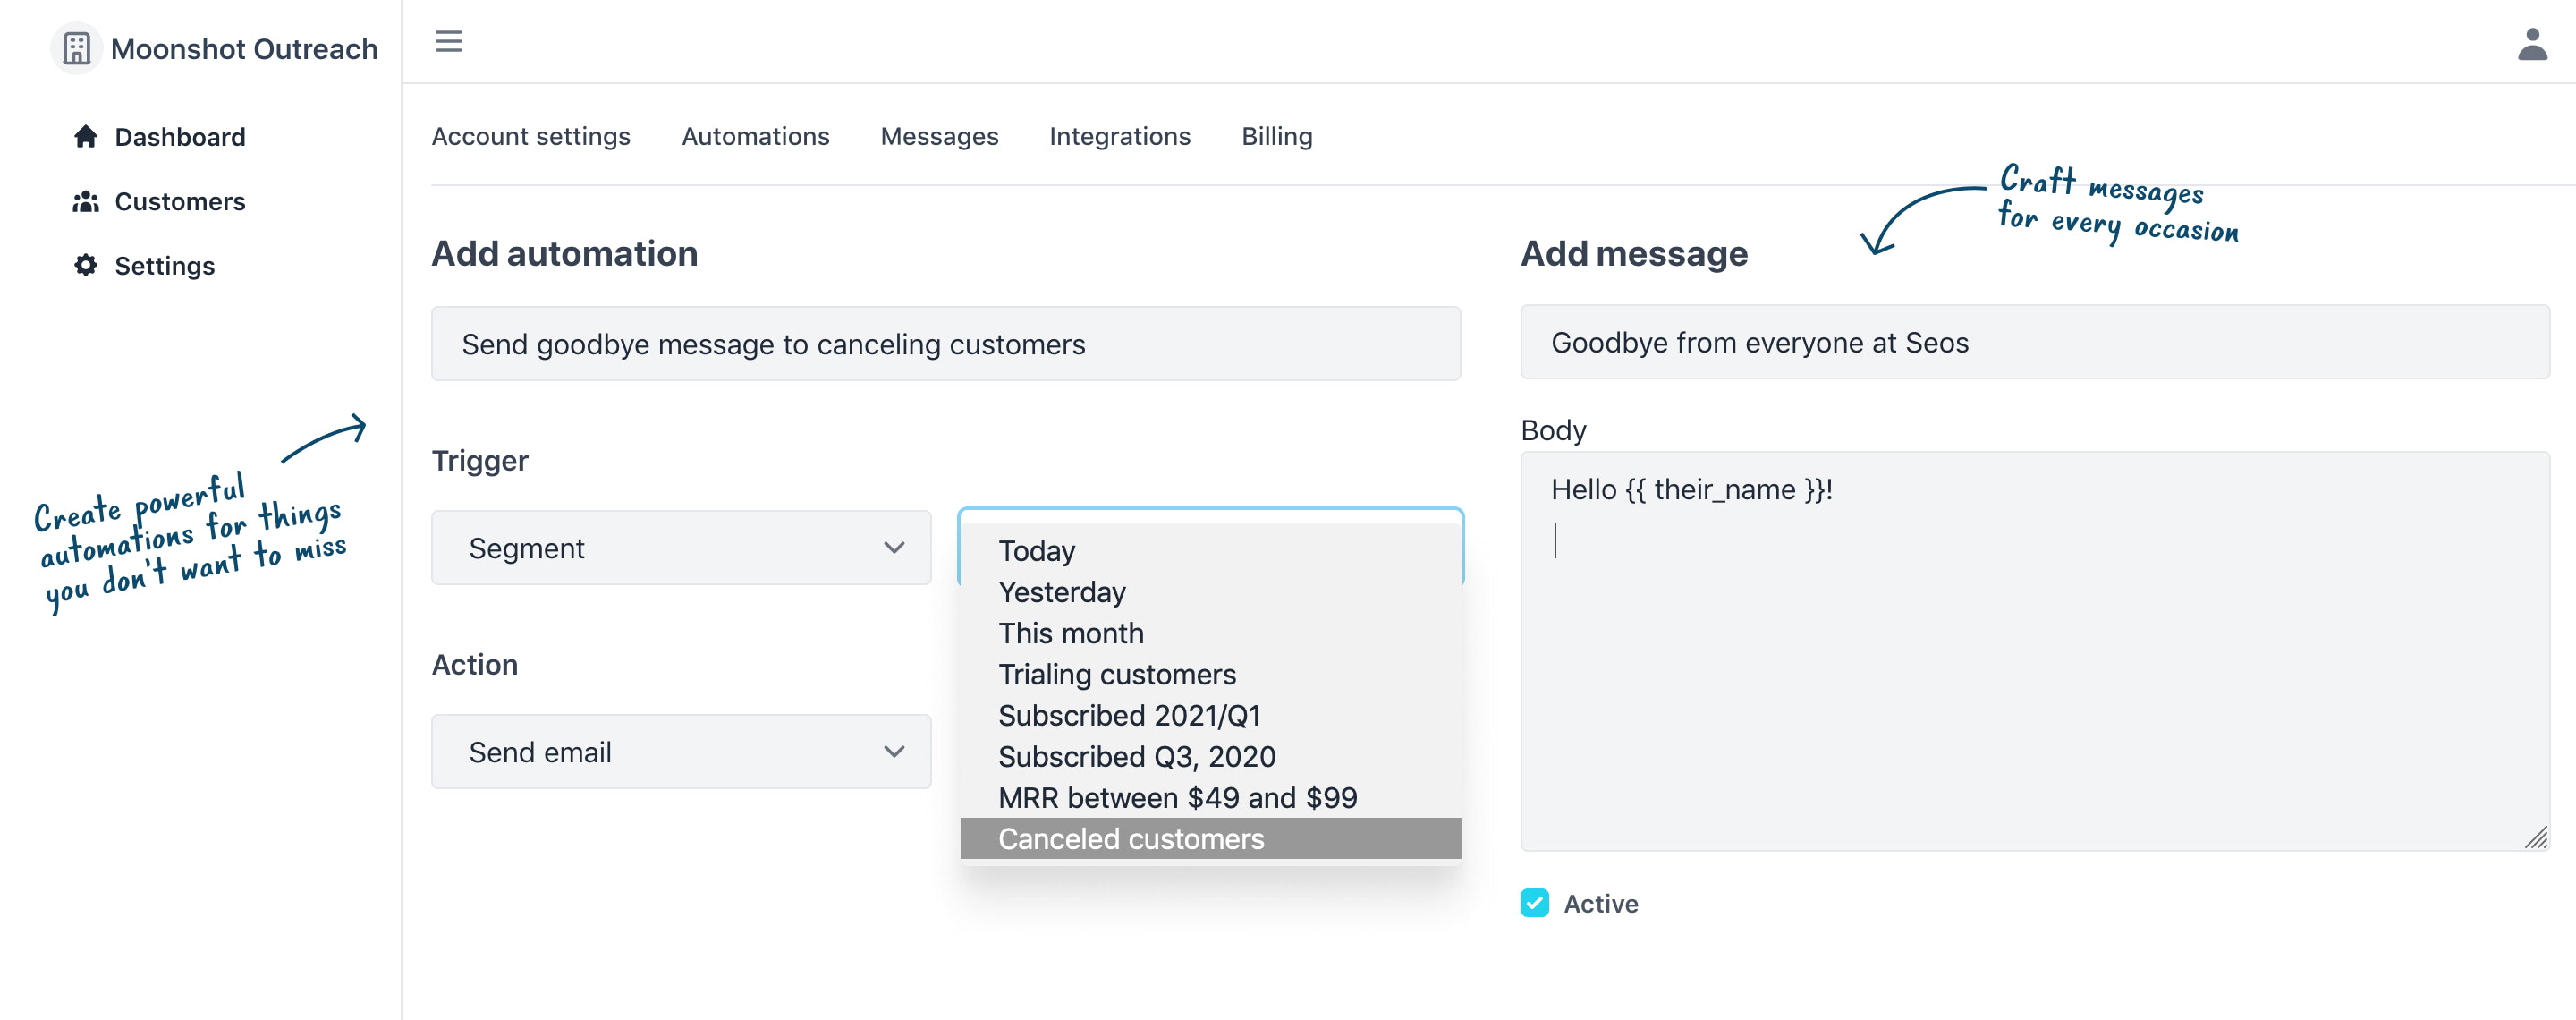 Preview of the automation and messages create pages